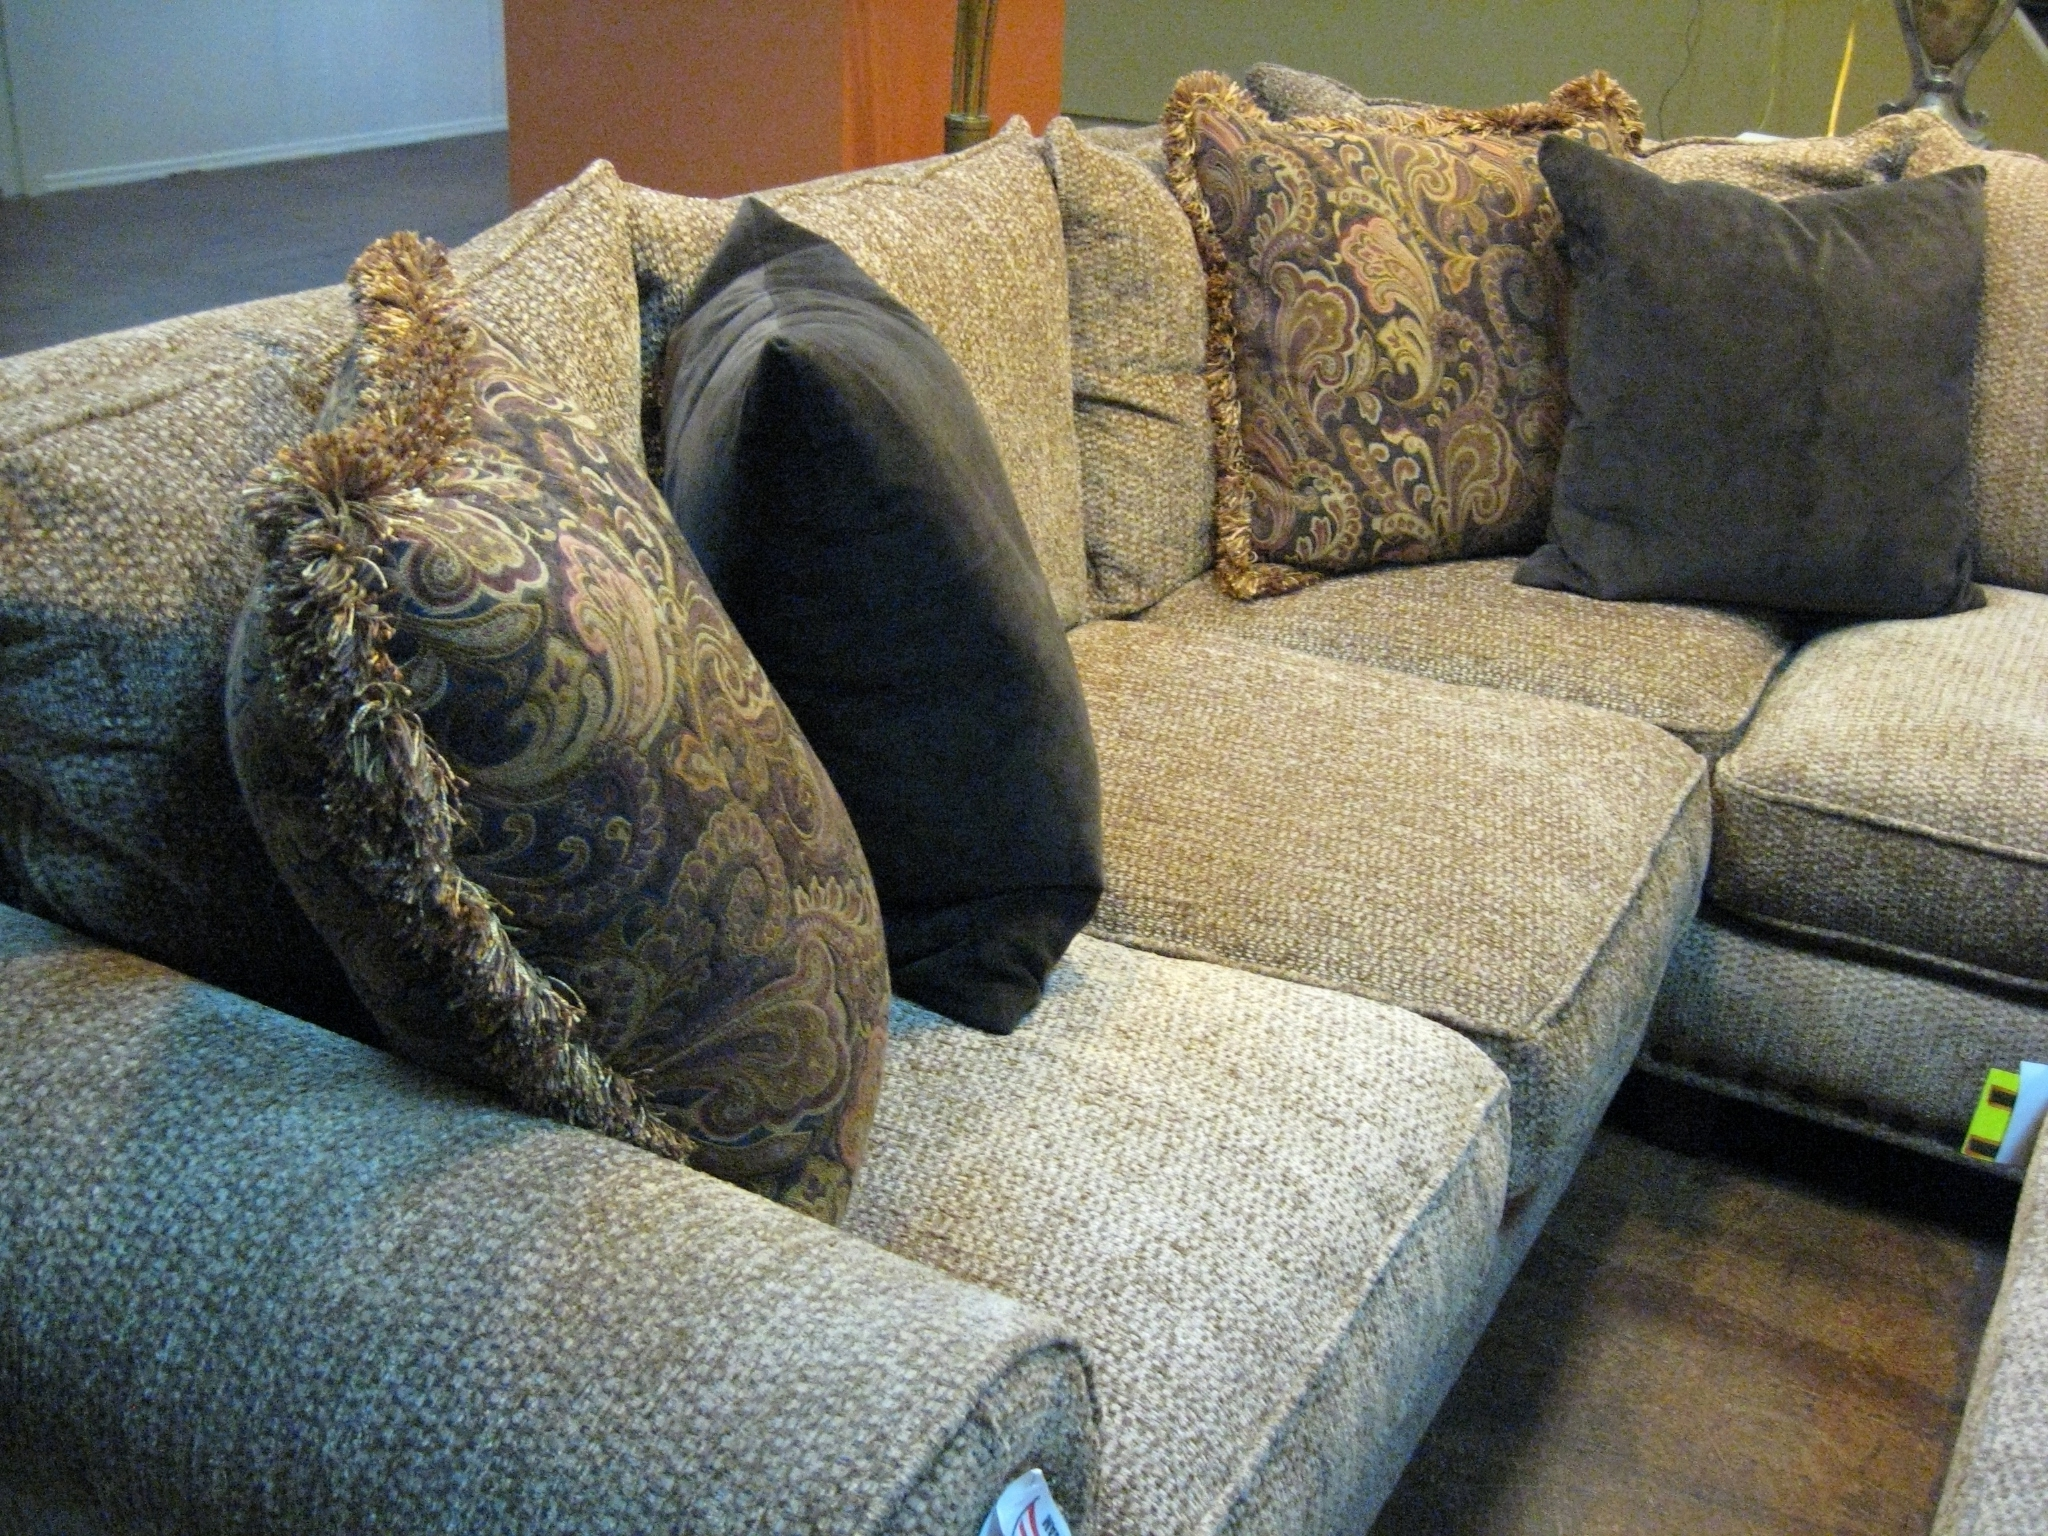 Preferred Luxury Down Filled Sectional Sofa 2018 – Couches And Sofas Ideas In Down Filled Sectional Sofas (View 13 of 15)